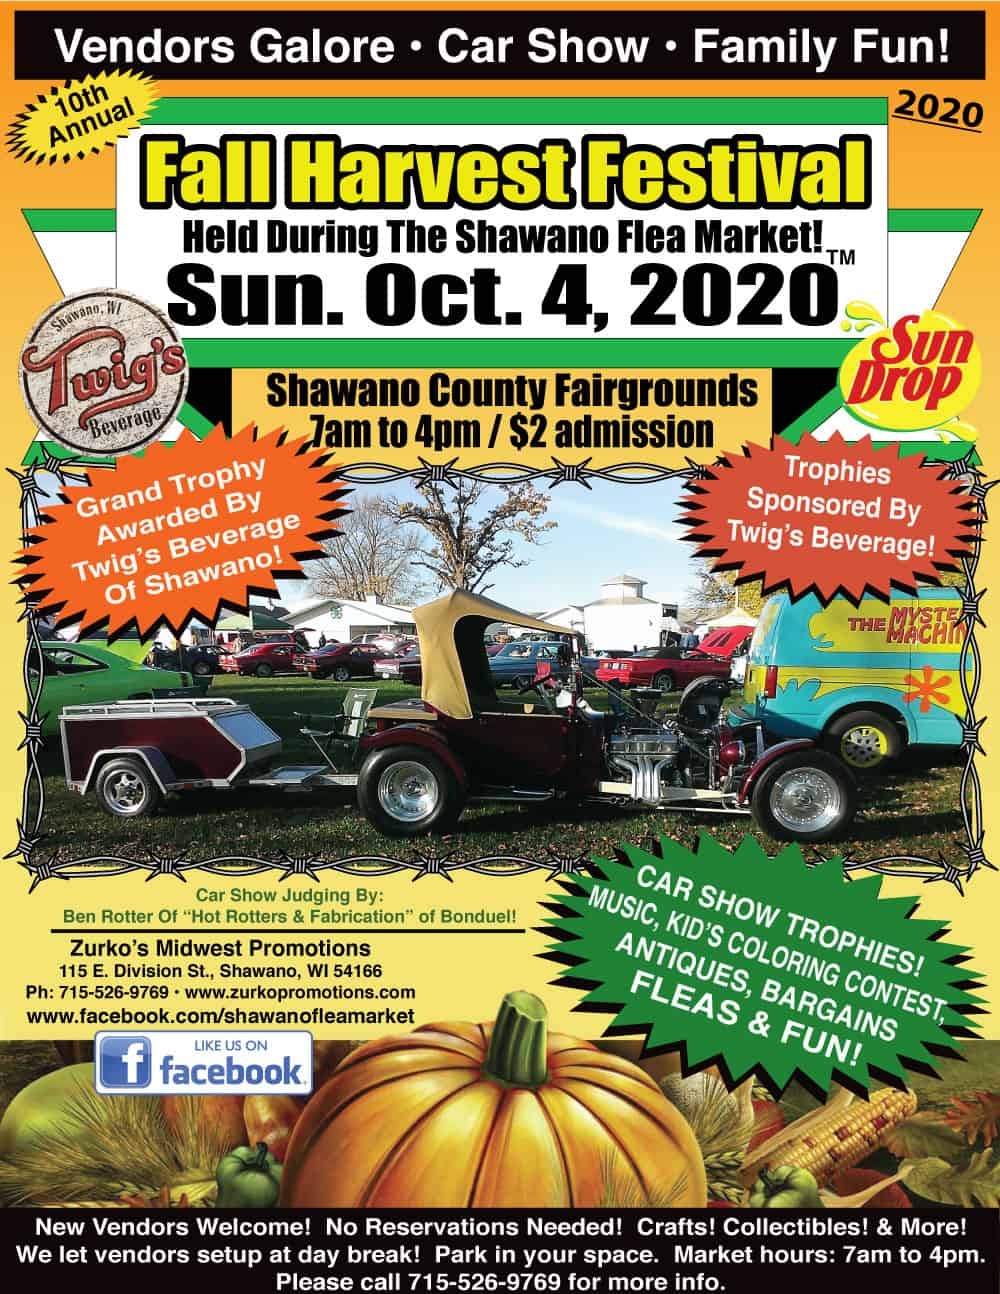 Shawano Wisconsin Car Show October 4, 2020